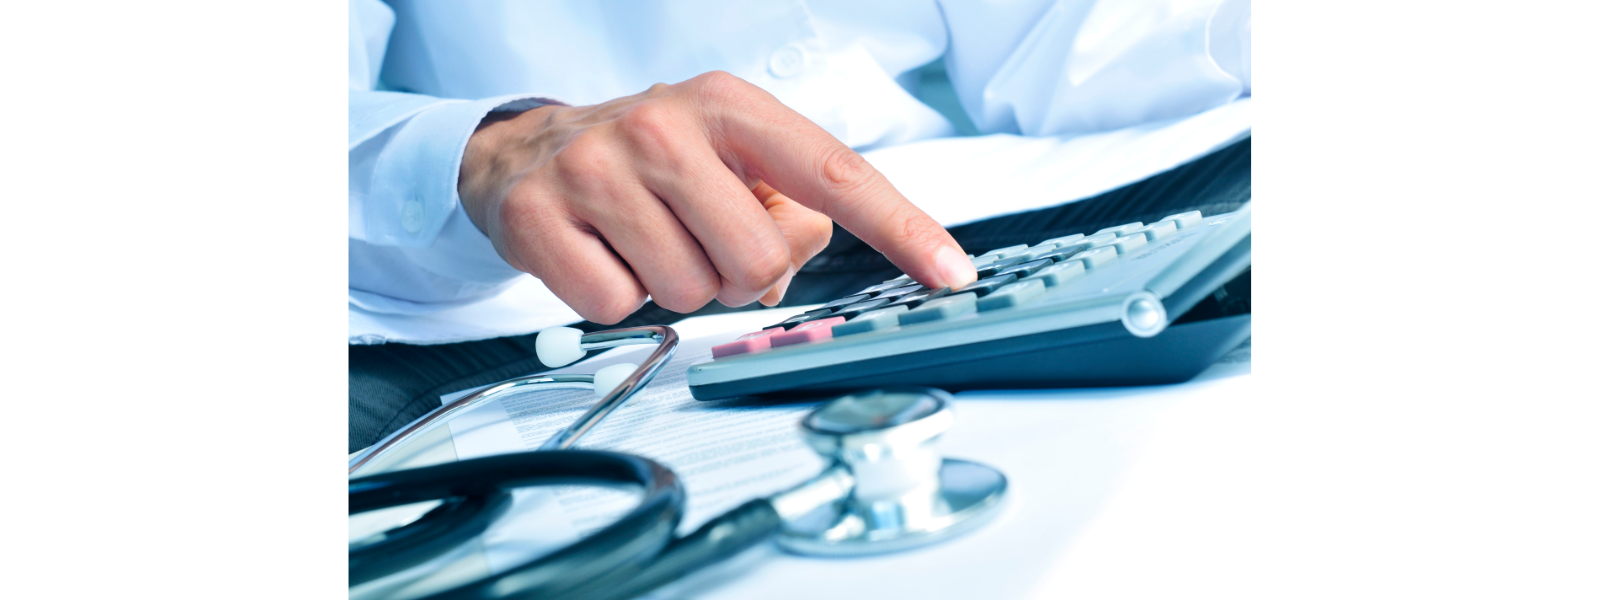 Is it a good idea to choose medical billing and coding as a career?